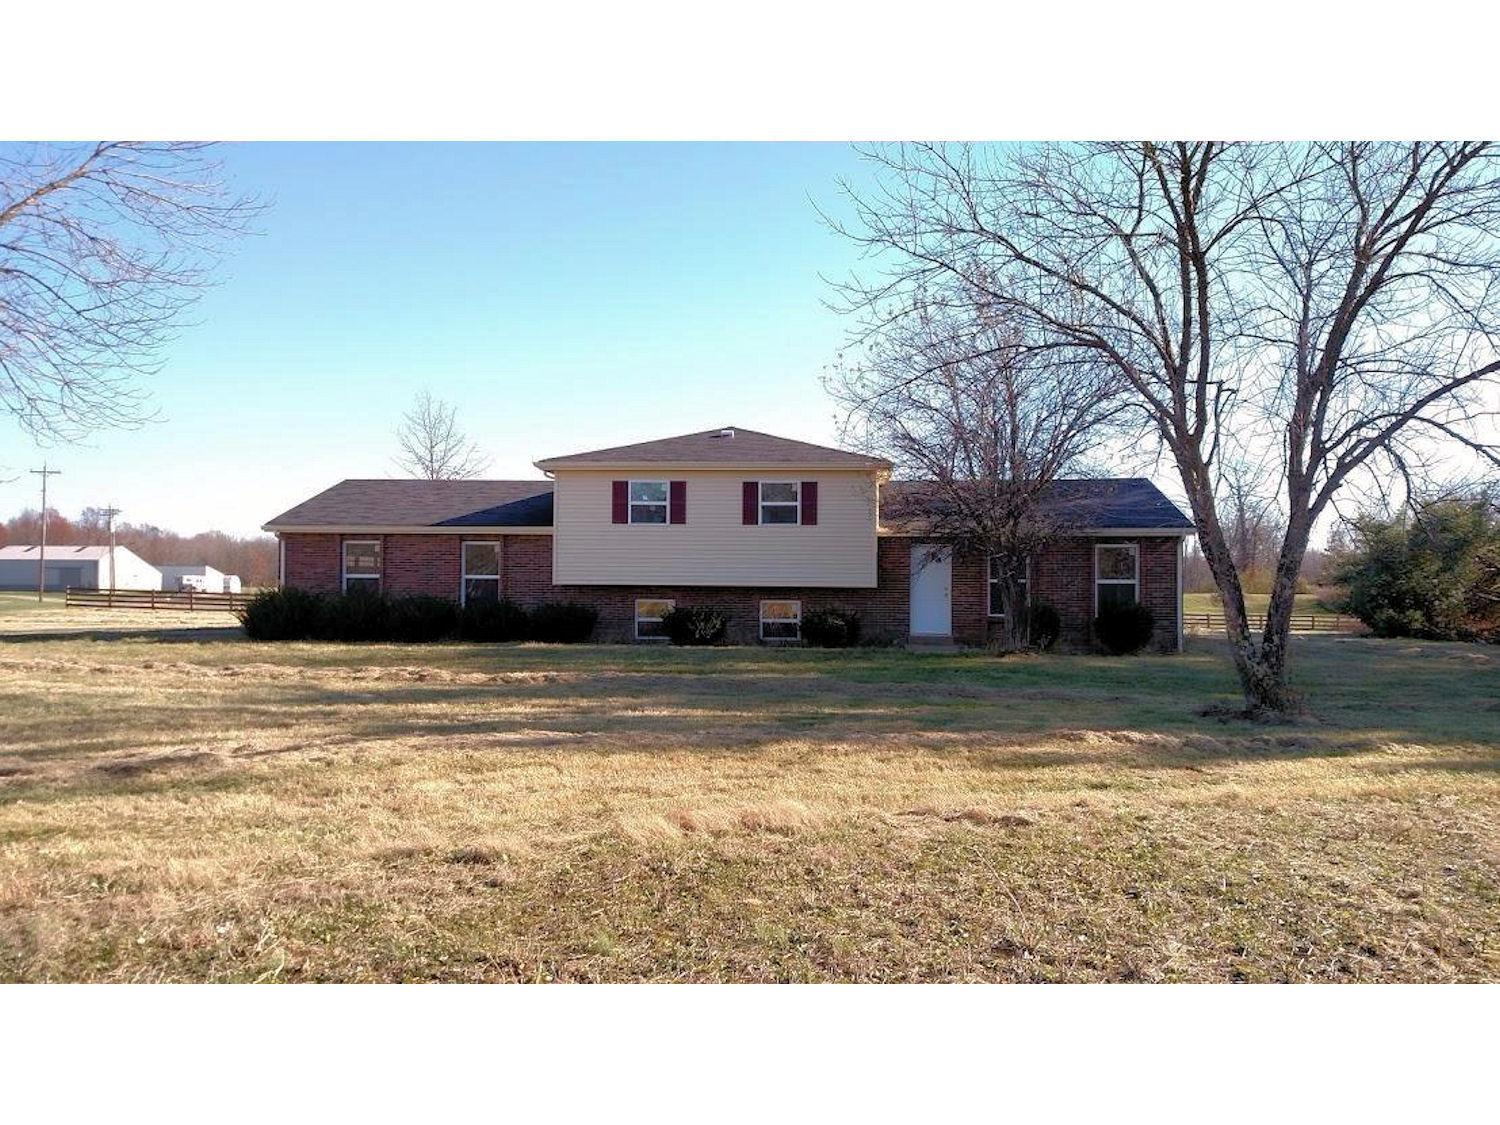 3389 St Rt 774, Franklin Twp, OH 45106